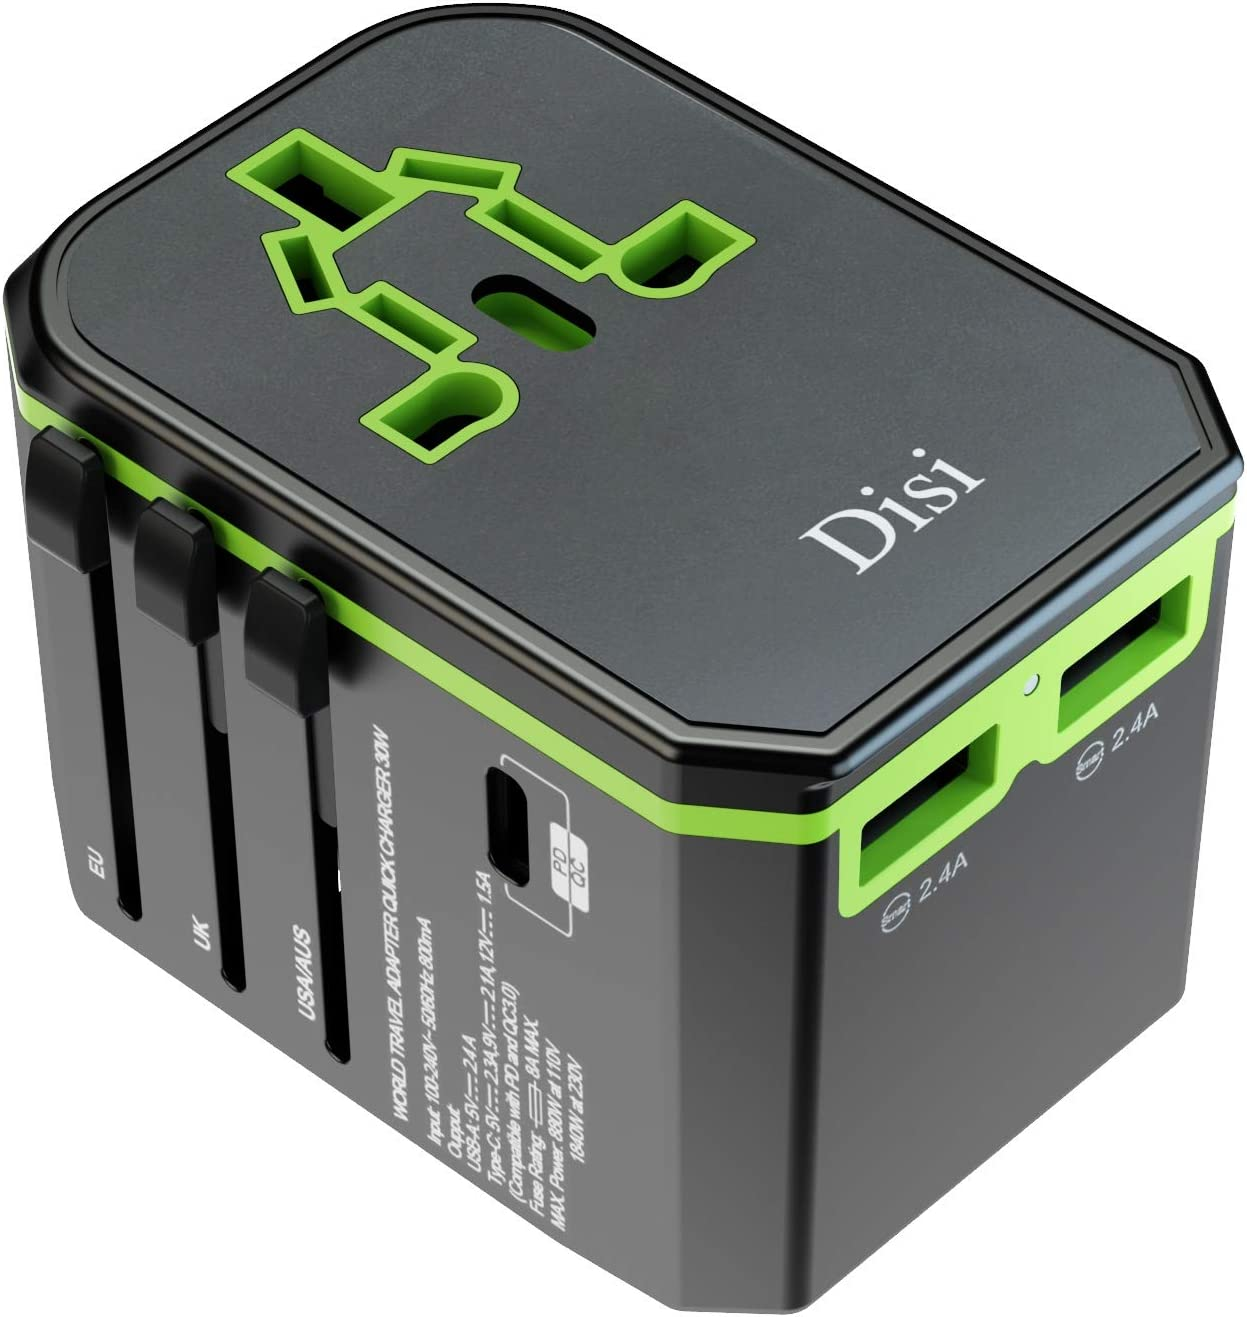 Disi Universal Fast Charging Travel Adapter, Universal Smart 2 USB + 1 Type C Charging Ports, One International Power Adapter for US, EU, UK, AU, Over 200 Countries (Black/Green)